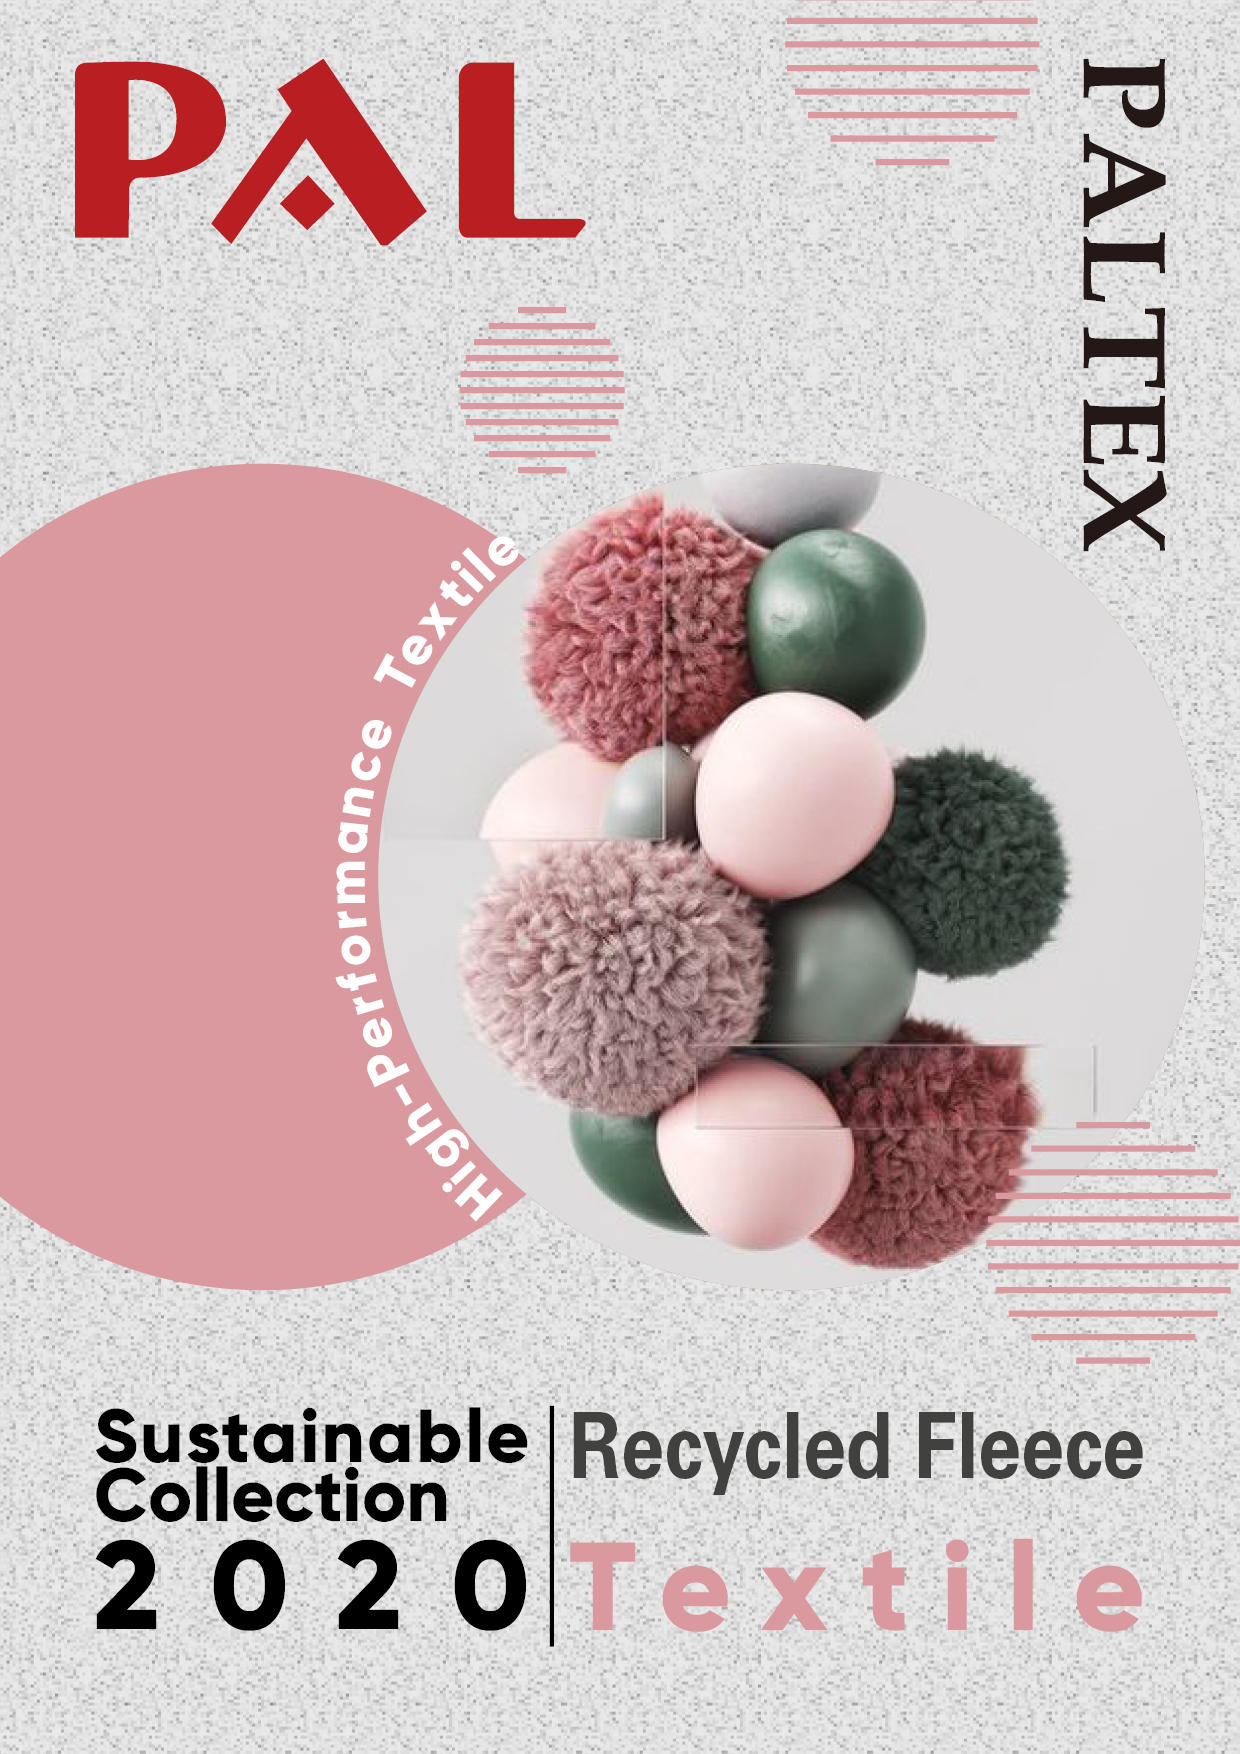 You are currently viewing Recycled Fleece from post-consumer plastic bottles